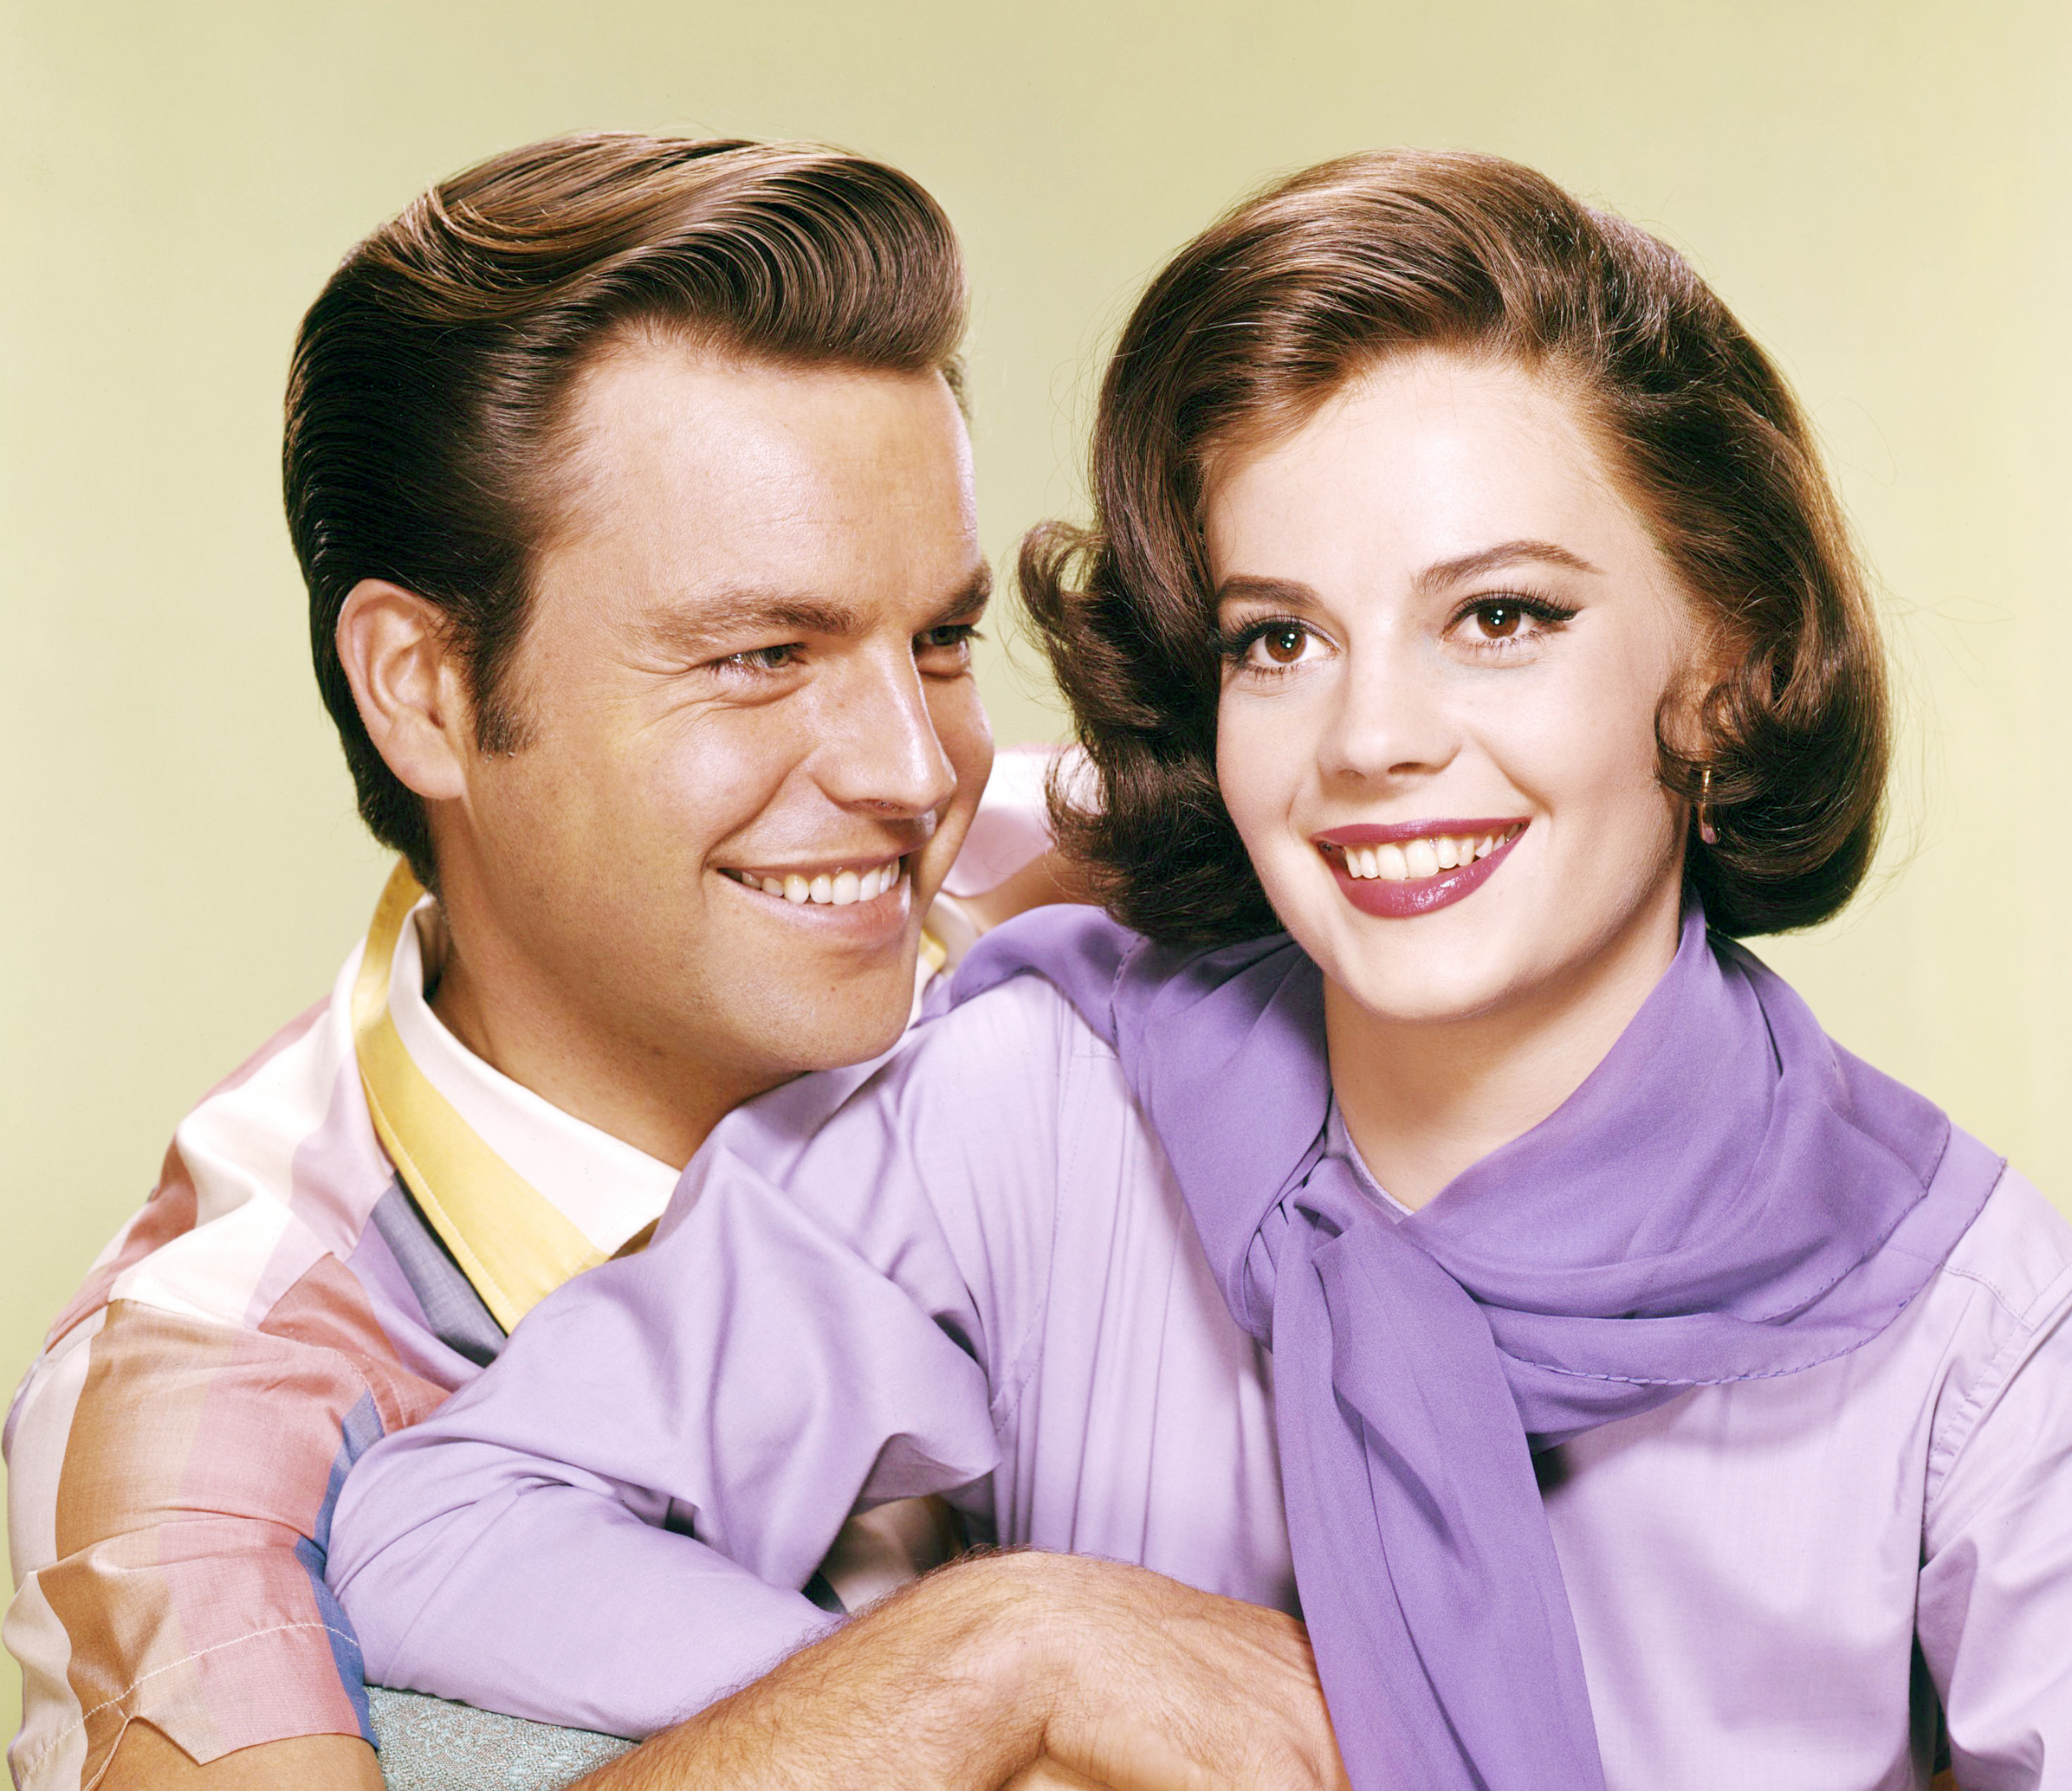 Did Robert Wagner kill Natalie Wood? Here's what we know about the actress's drowning